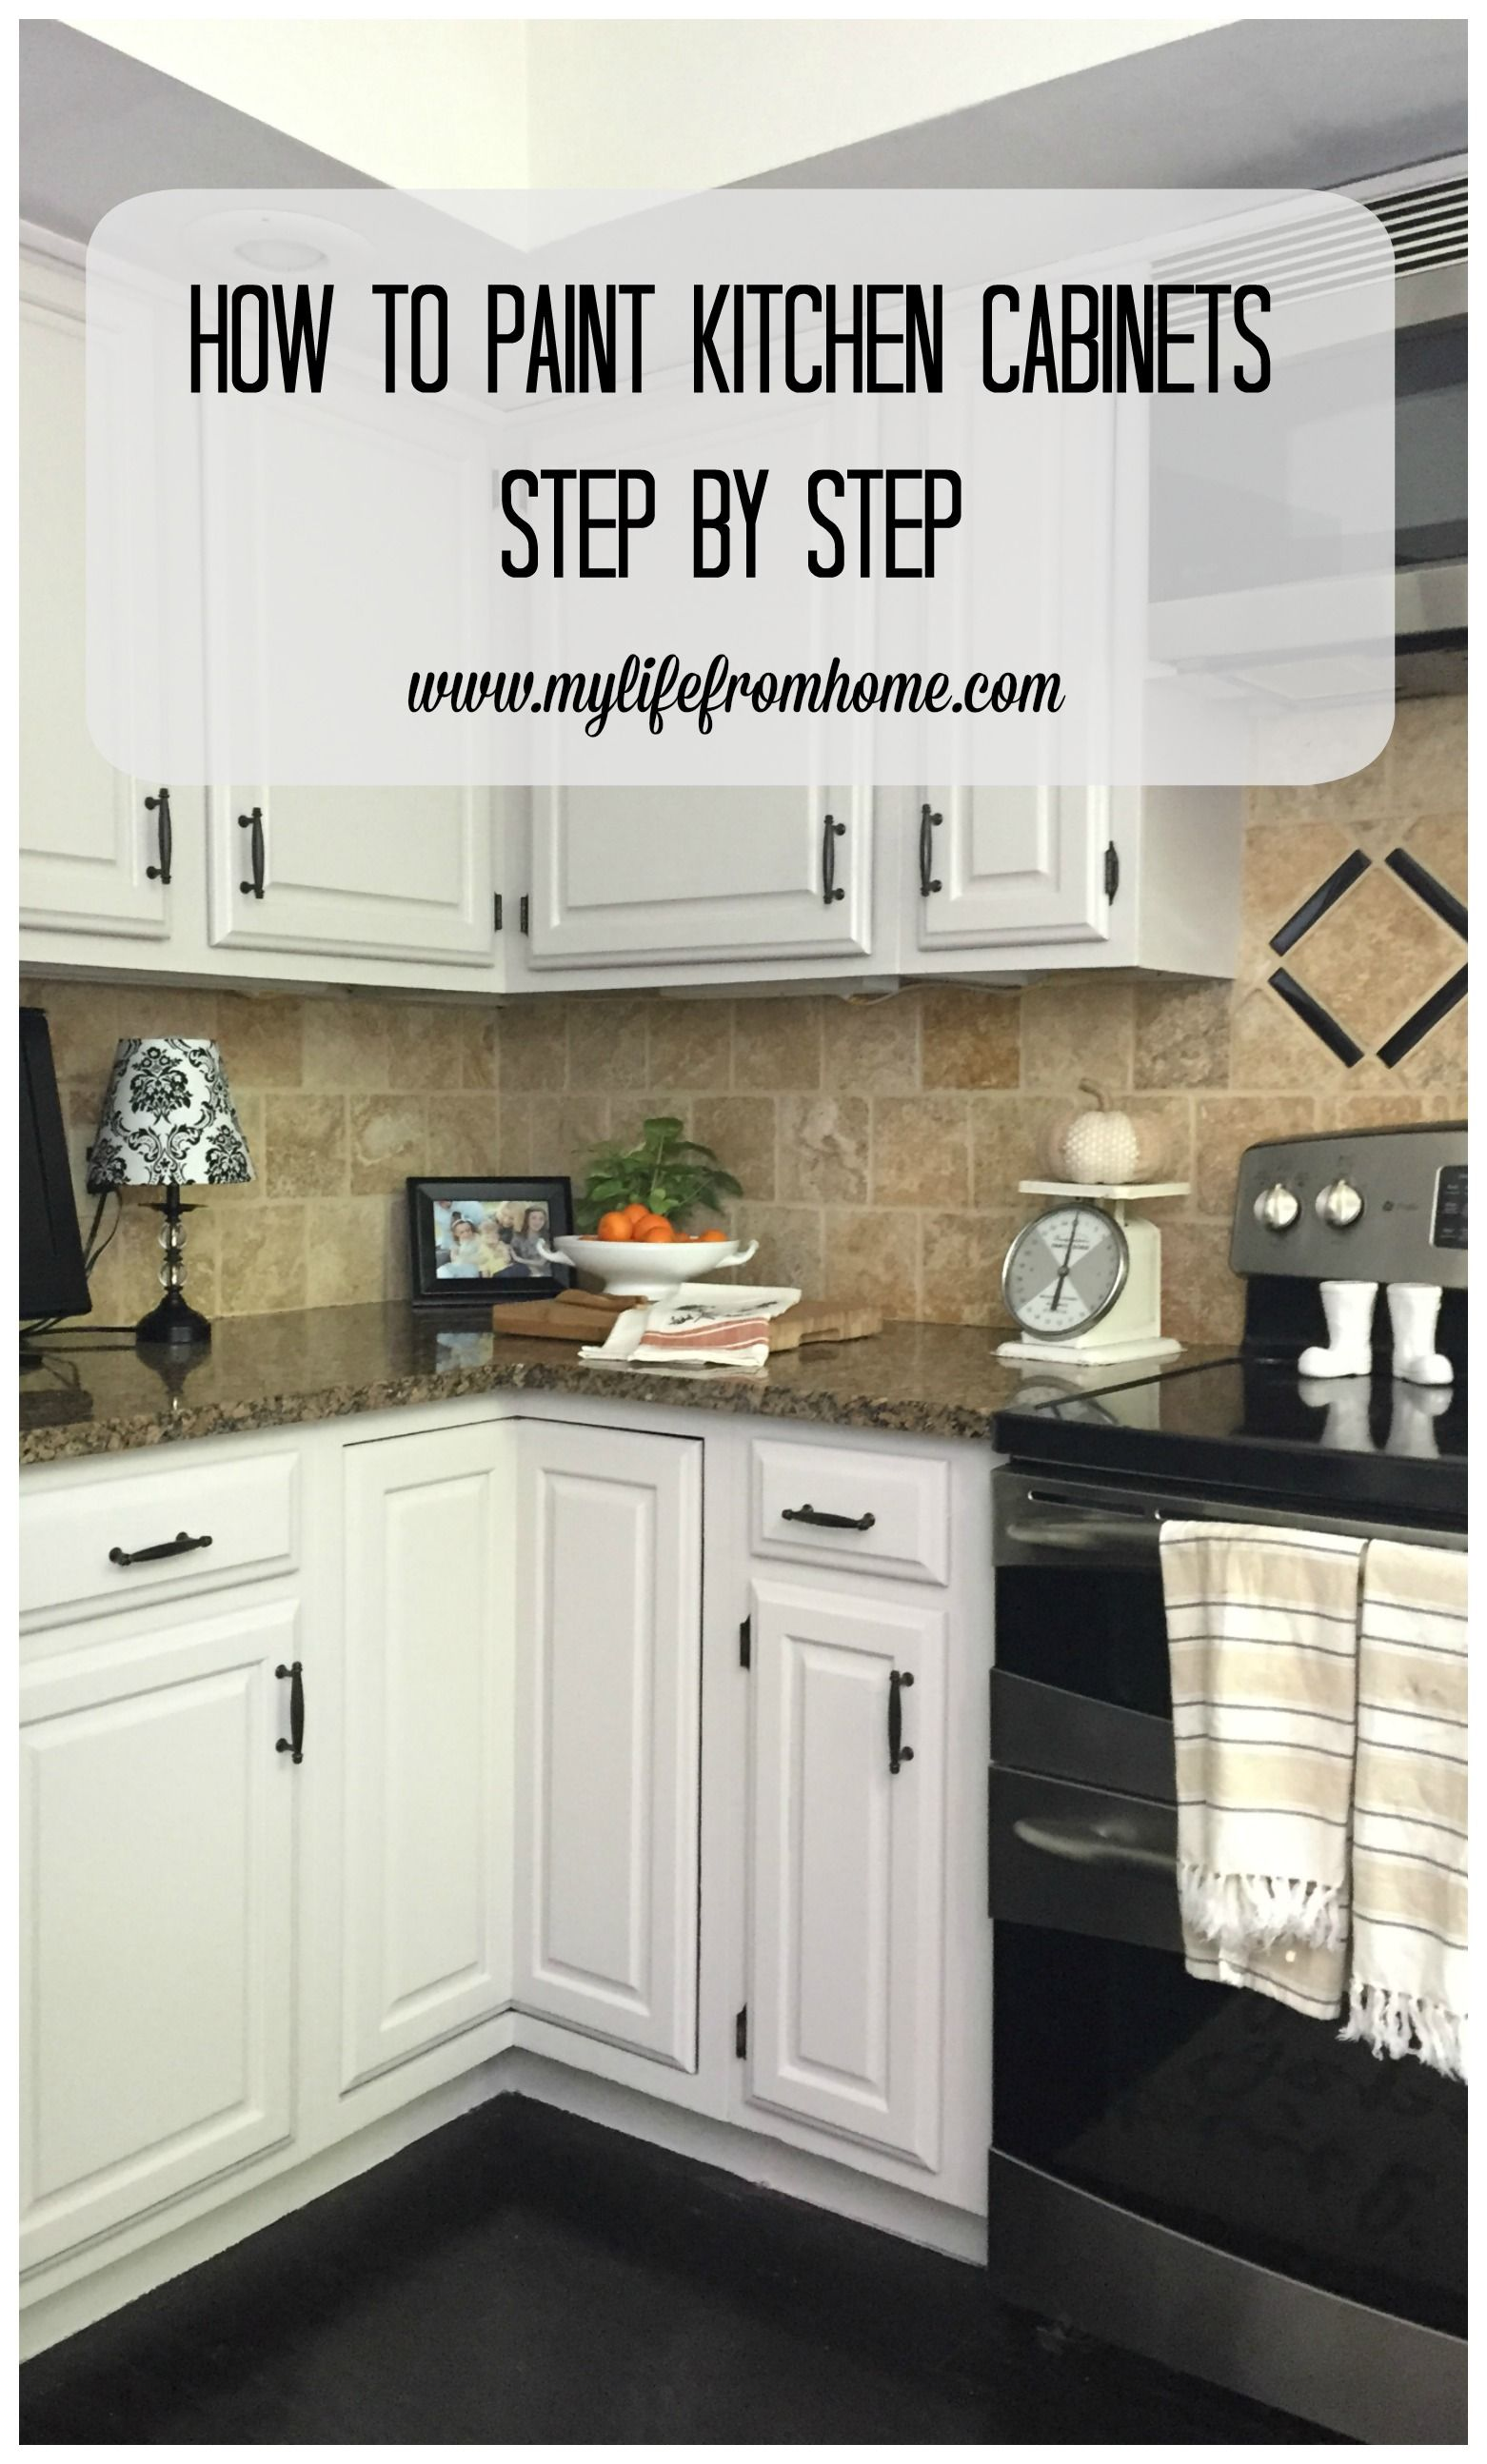 Step by Step instructions on how to paint oak kitchen cabinets. All ...